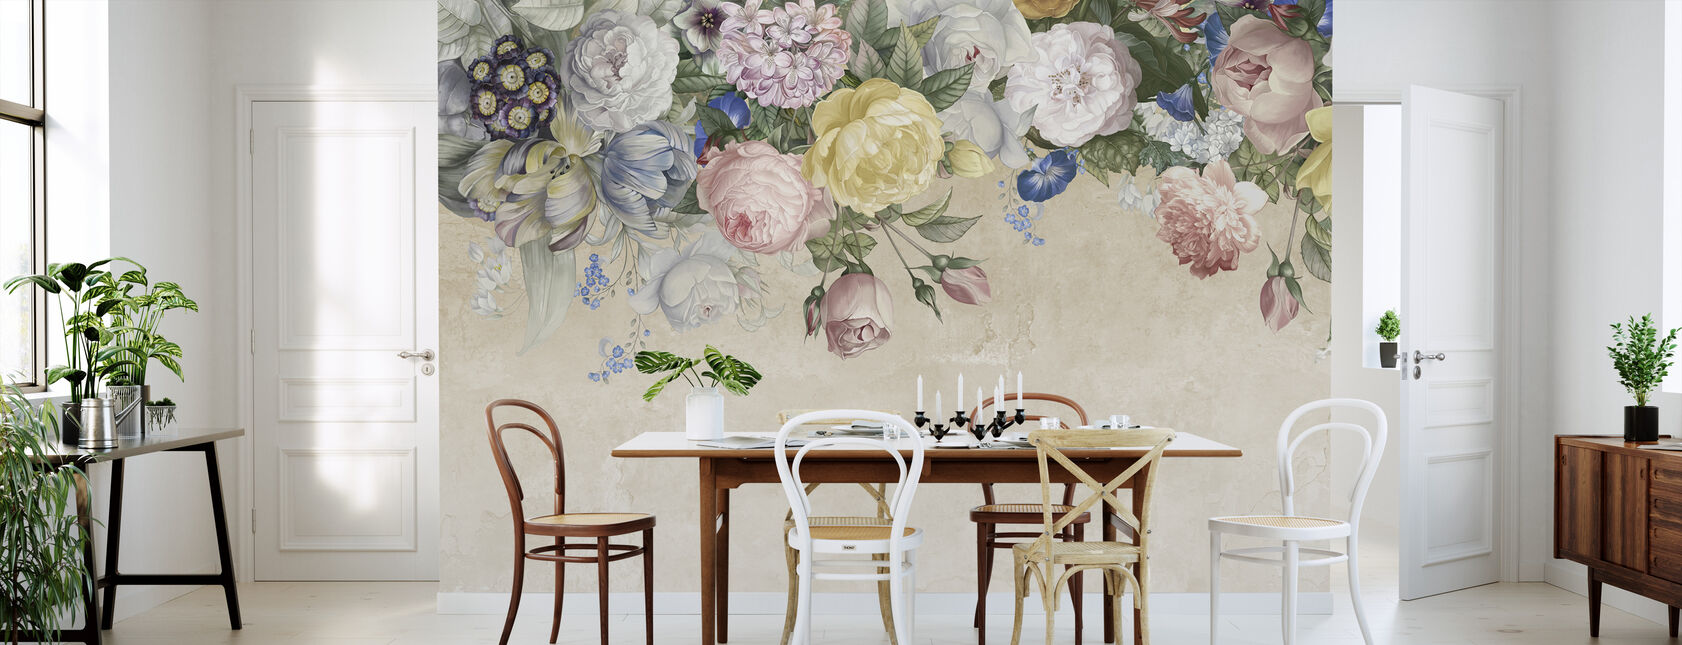 Wall of Flowers - Wallpaper - Kitchen